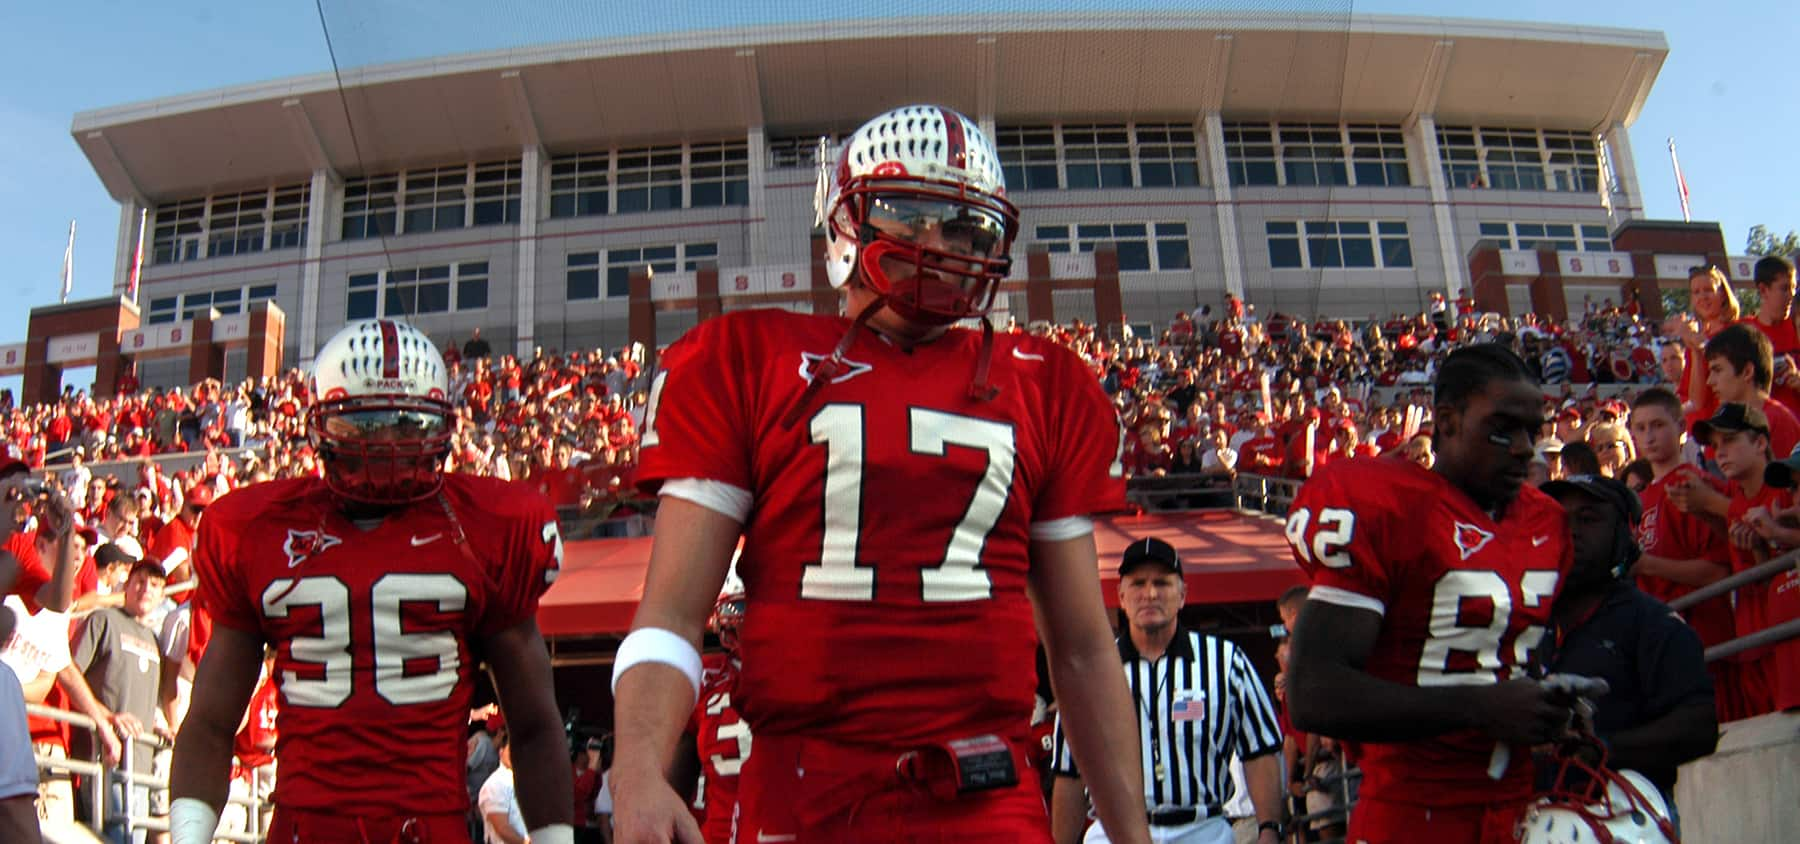 Quarterback Philip Rivers enters Carter-Finley Stadium